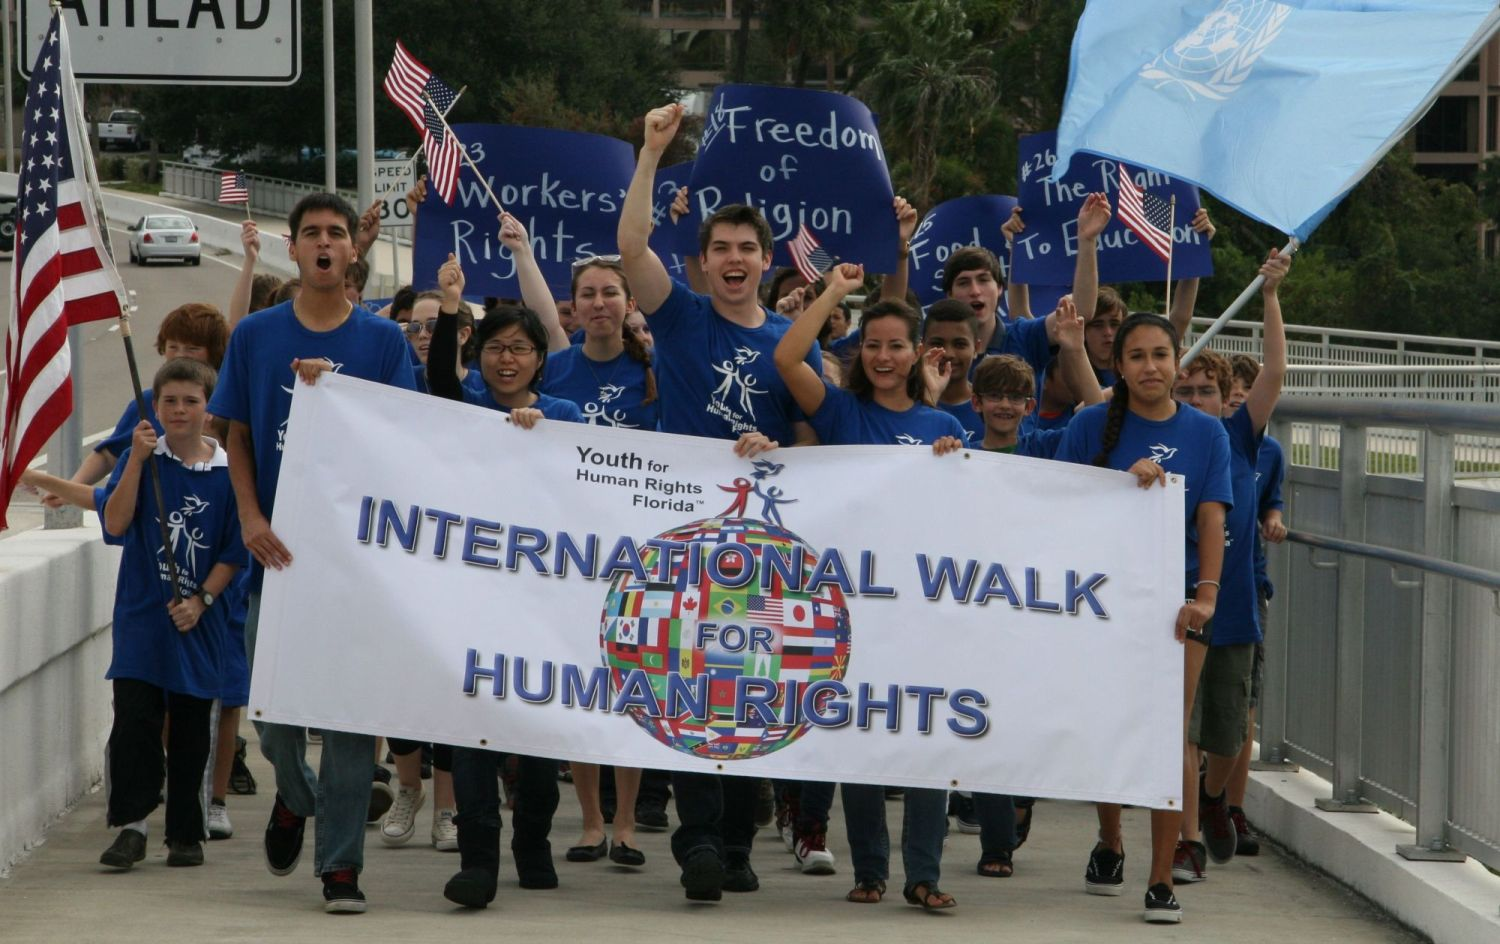 youth for human rights Explore critical human rights issues in their communities and around the world, engage with a diverse range of peers from across the state, and develop the values and skills necessary to take action in support of human rights for all.